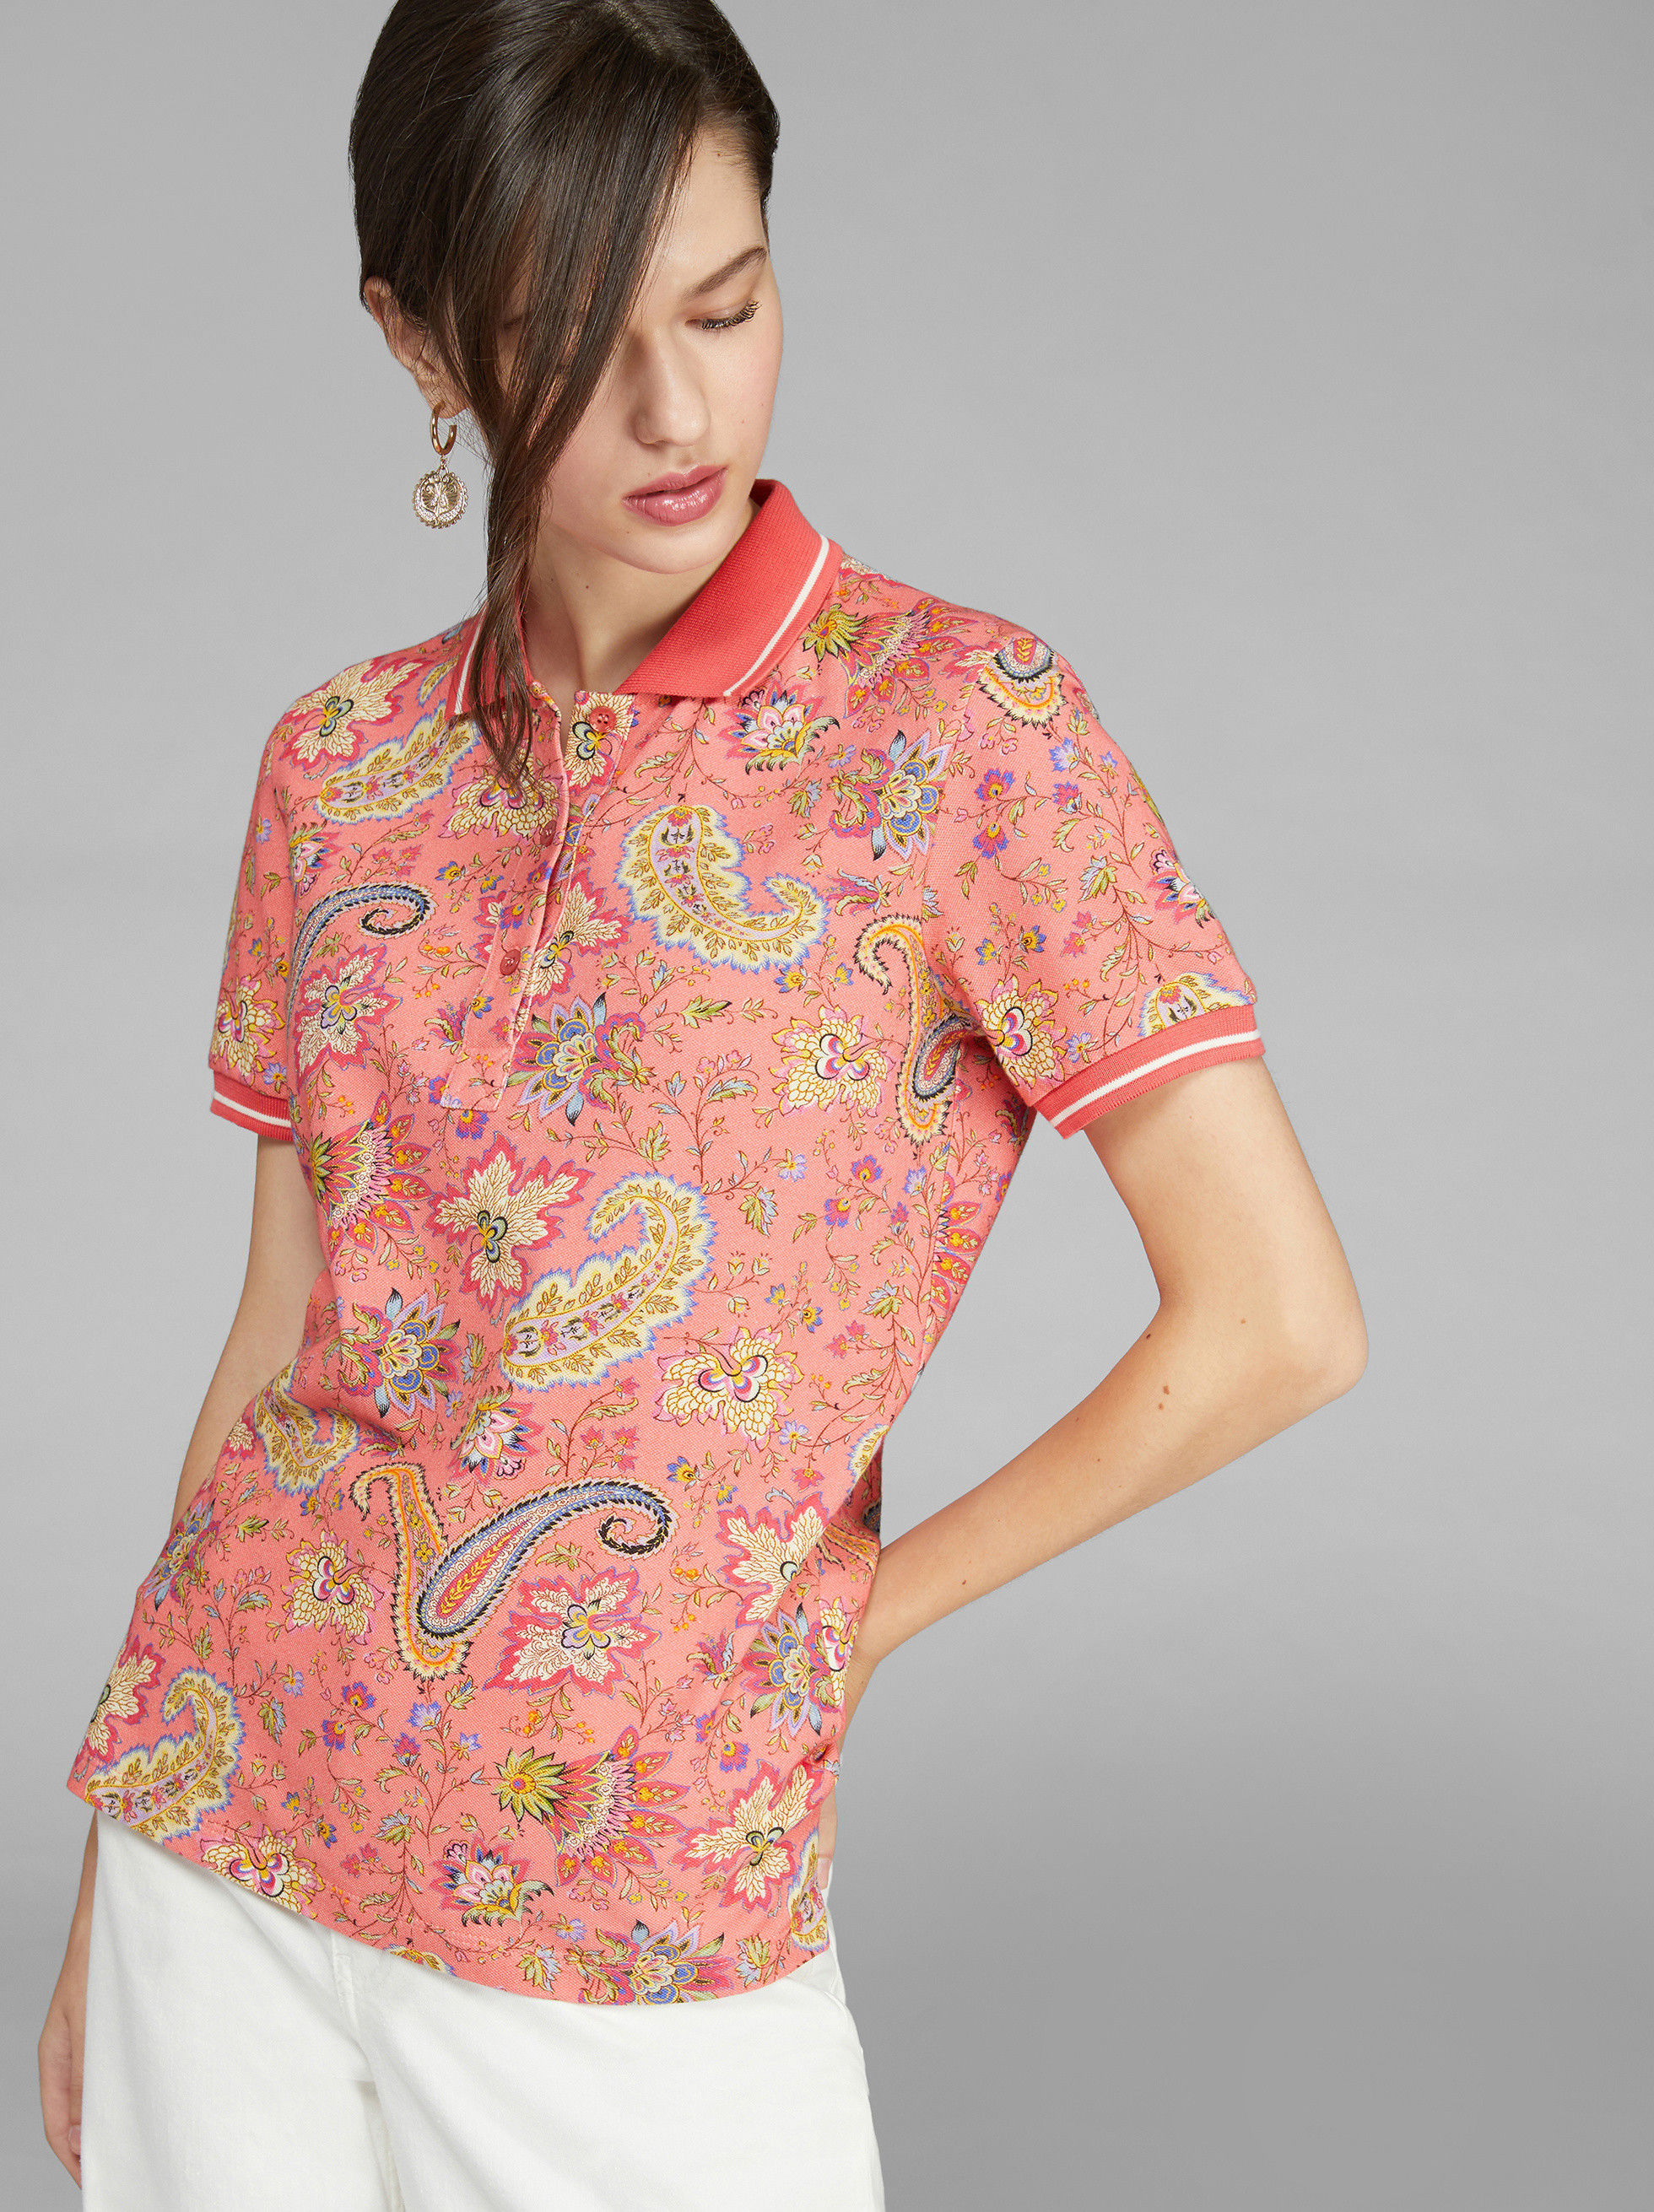 POLO SHIRT WITH PAISLEY DETAILS